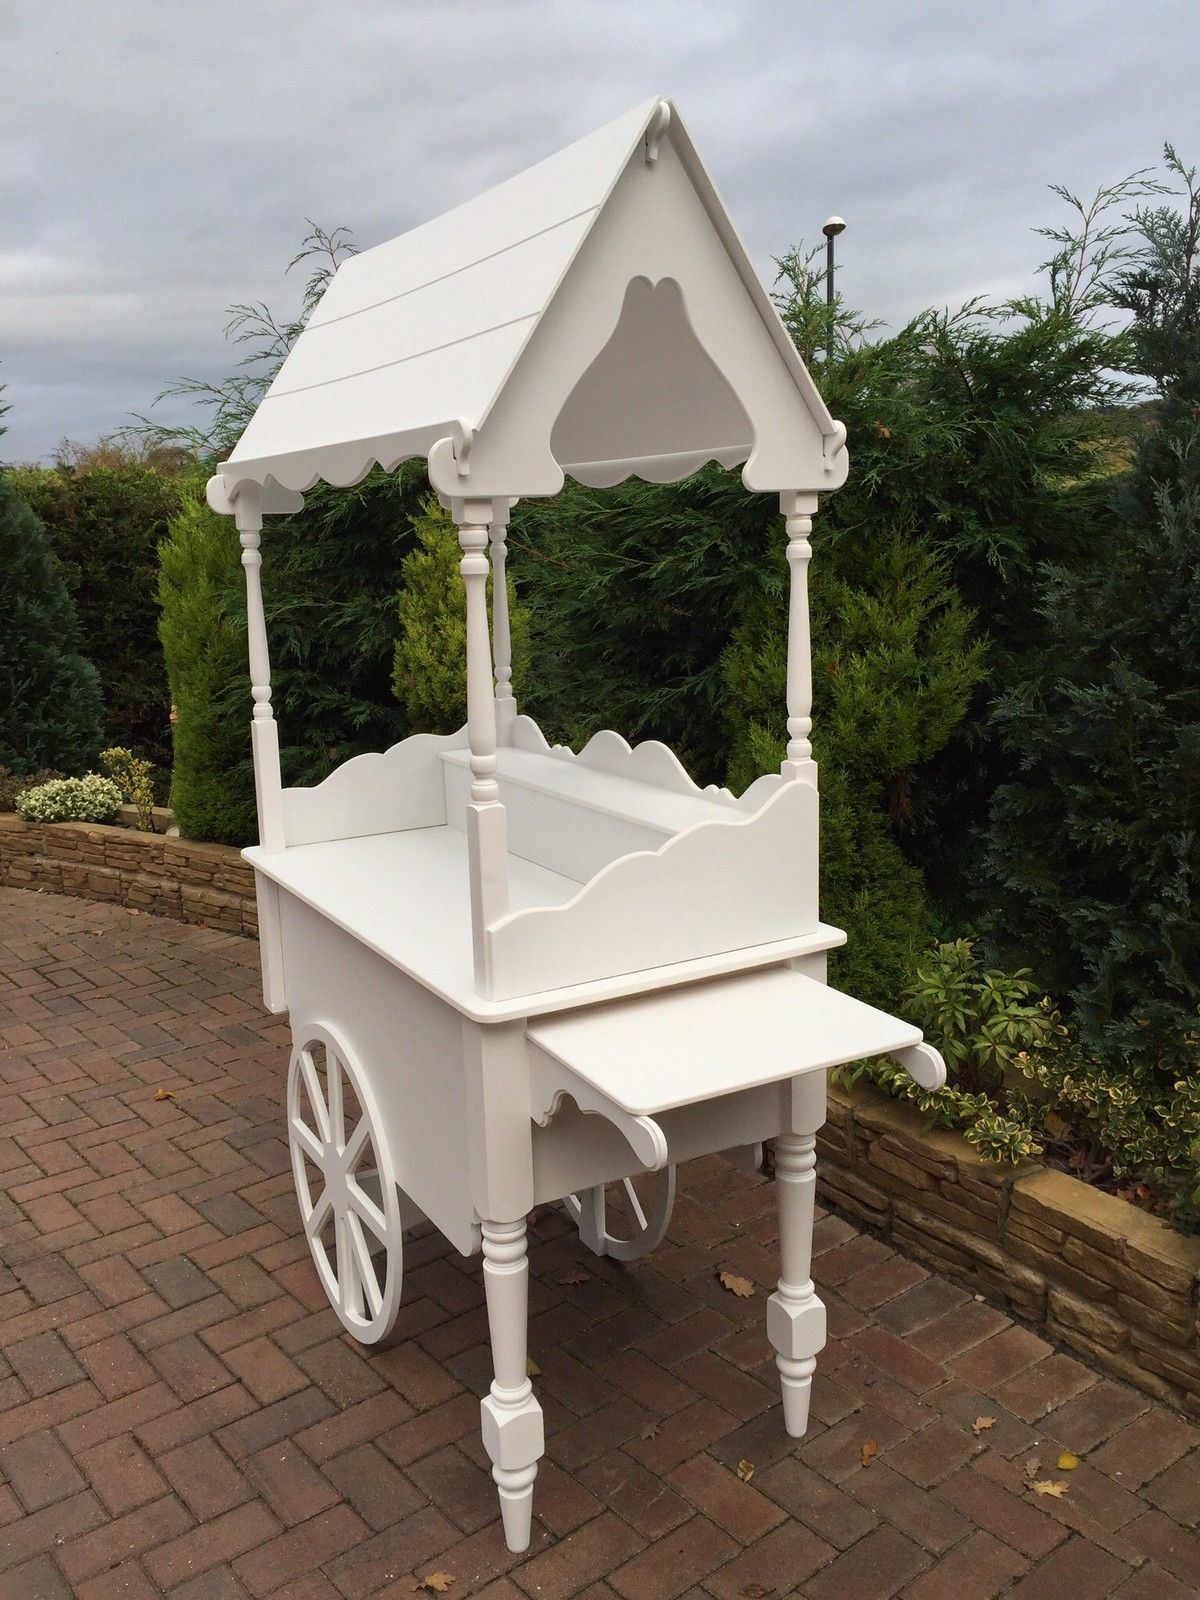 Wedding candy cart sweet cart for sale market cart stall trolley